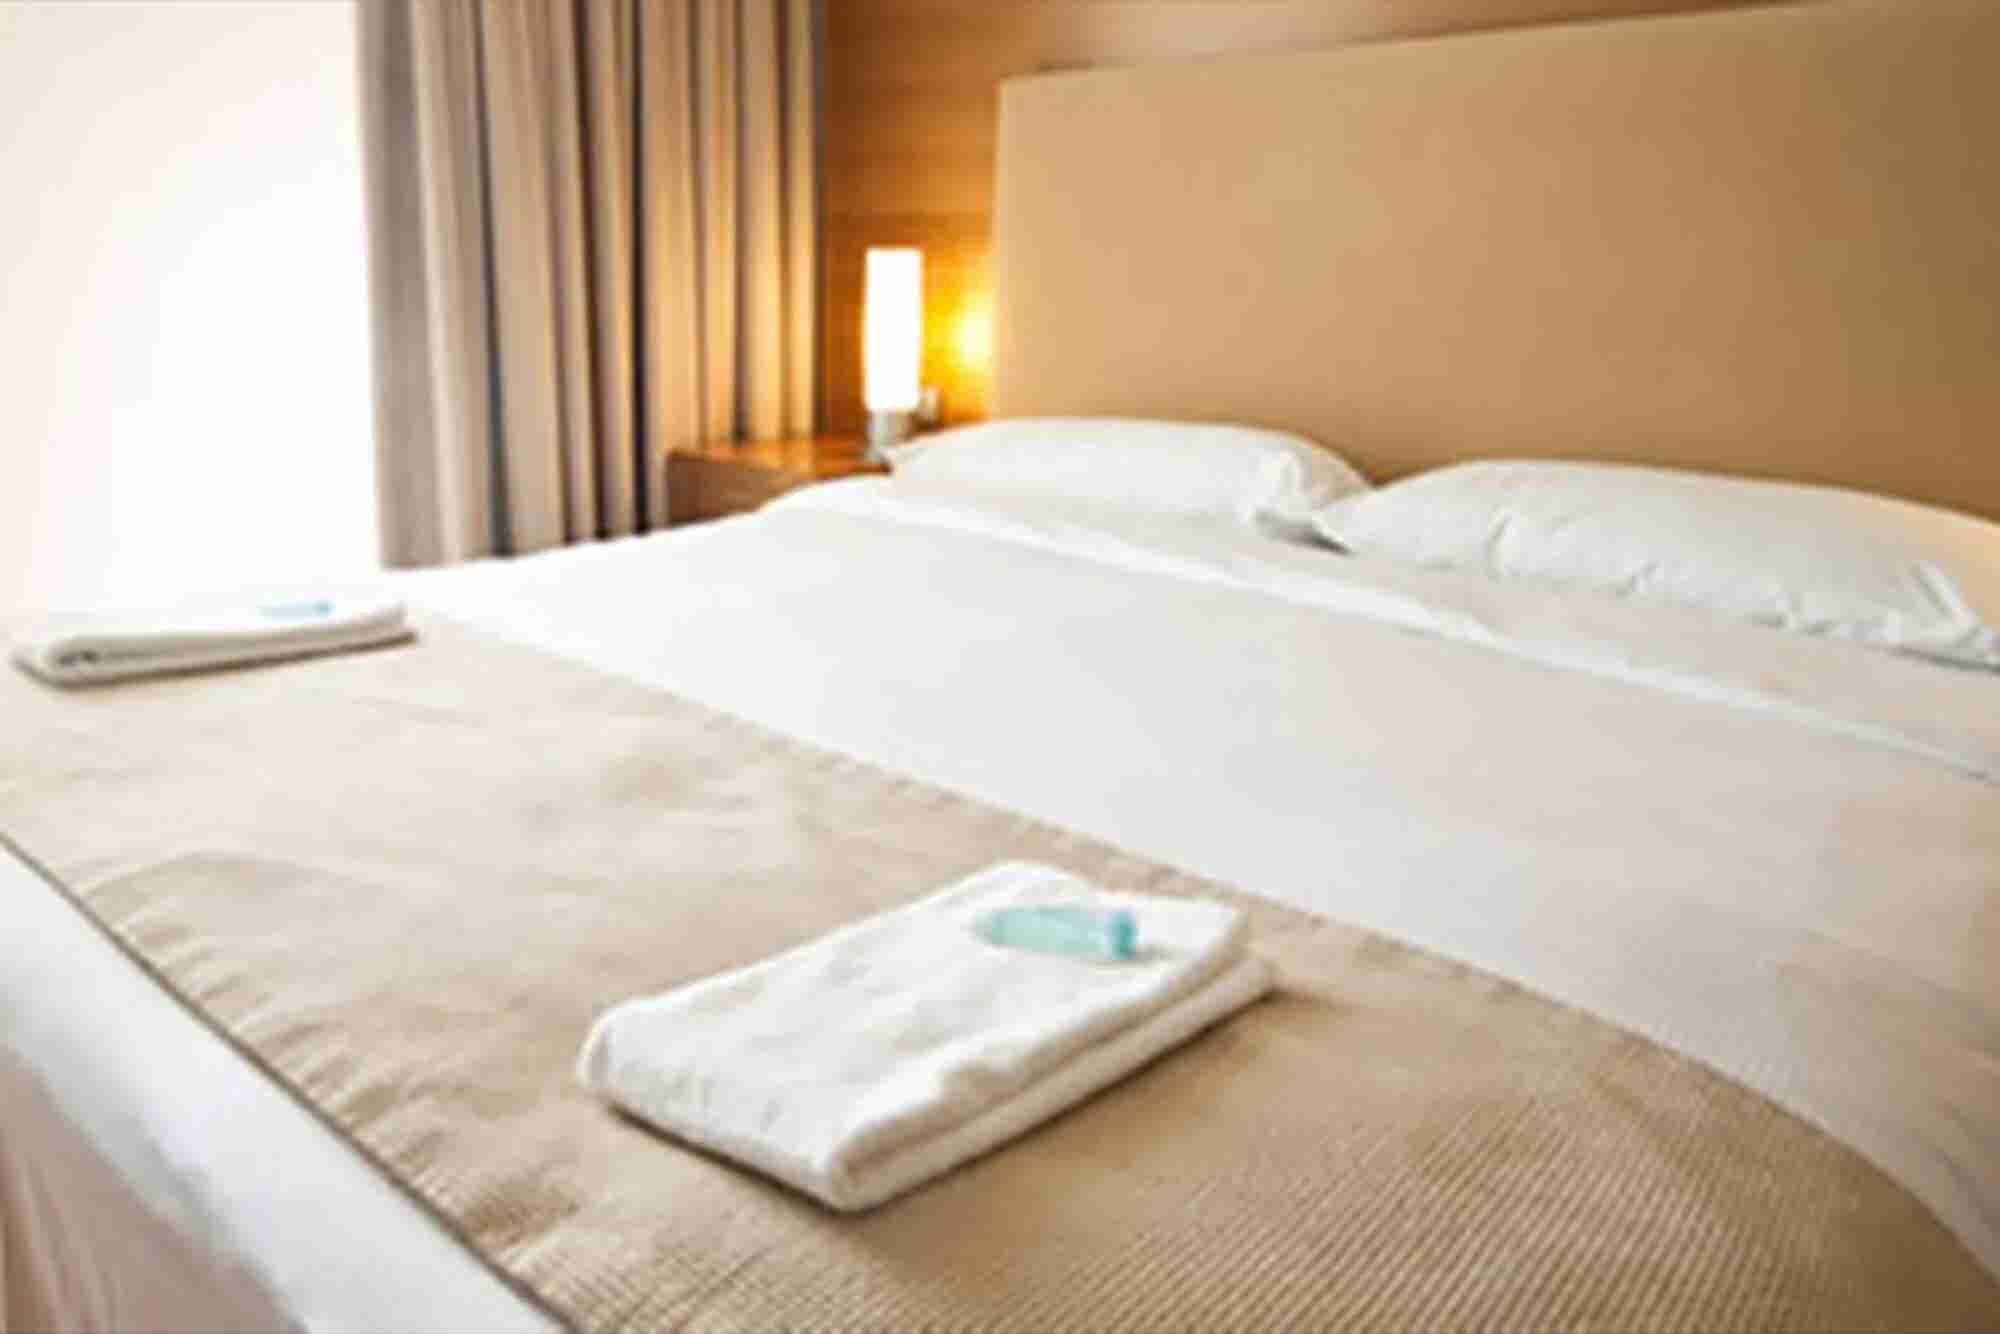 10 Products to Protect Against Bedbugs on Your Next Business Trip